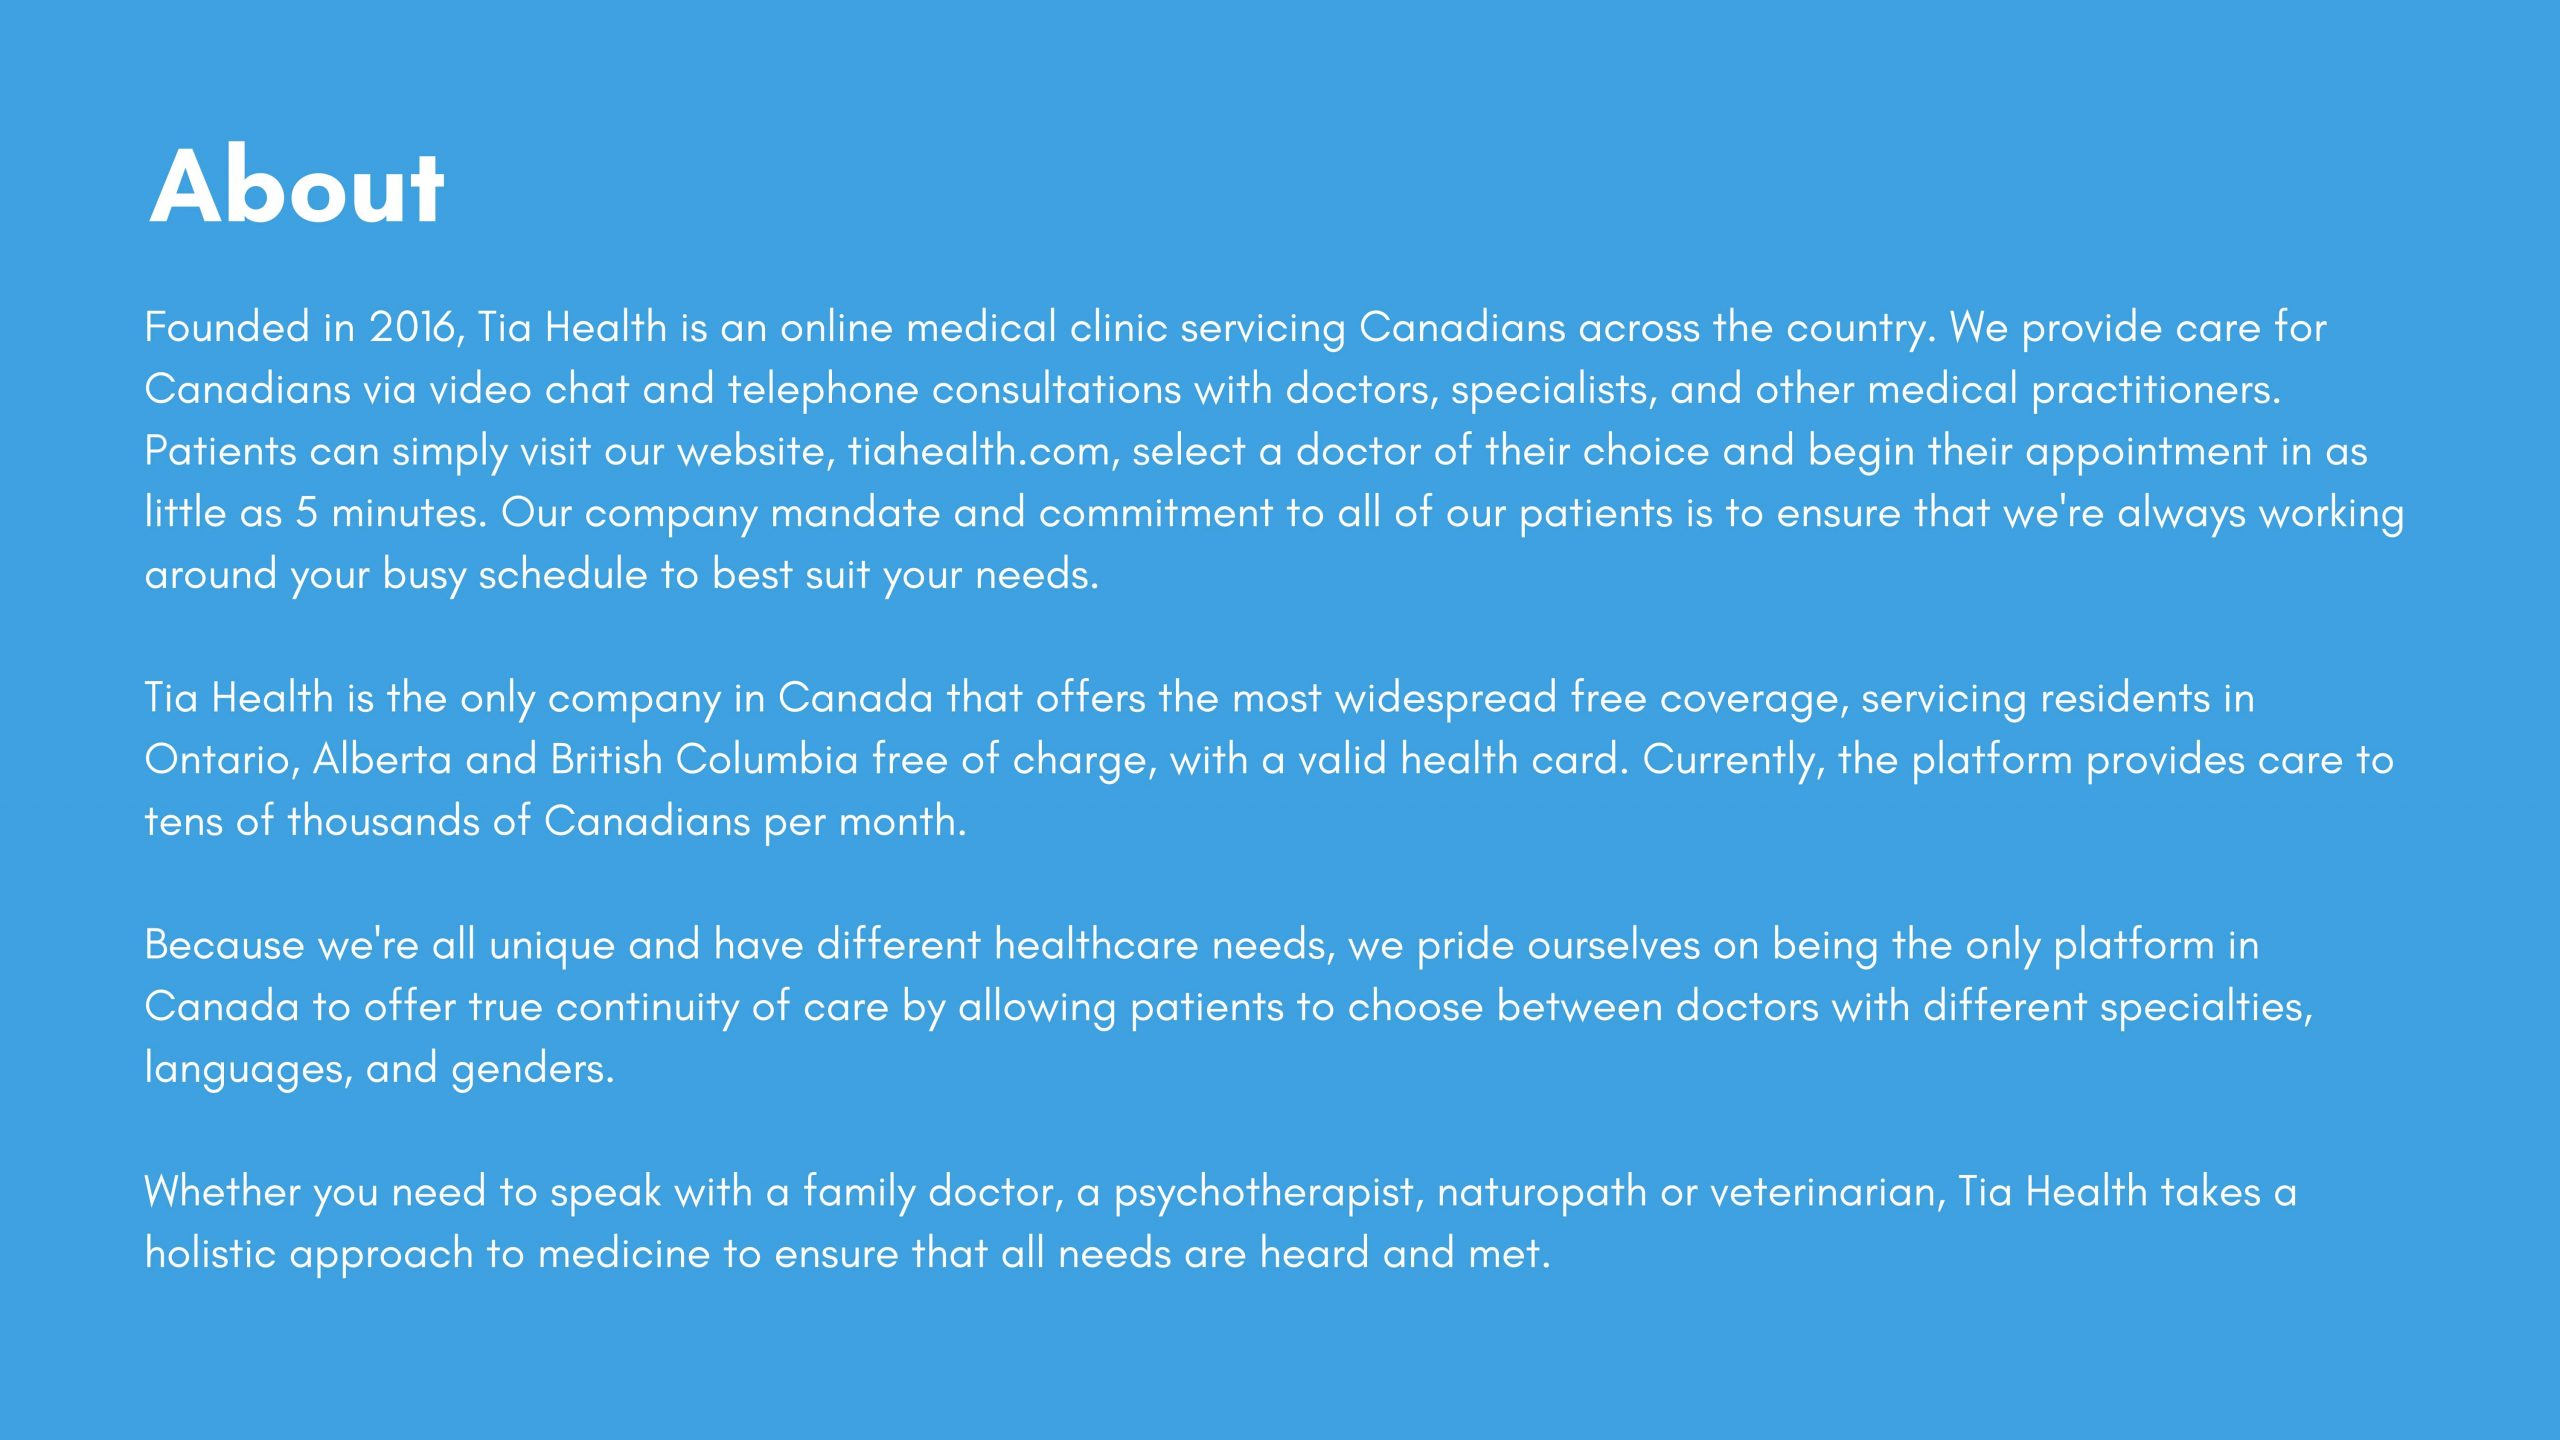 tia health is a online medical clinic servicing Canadians across Canada.